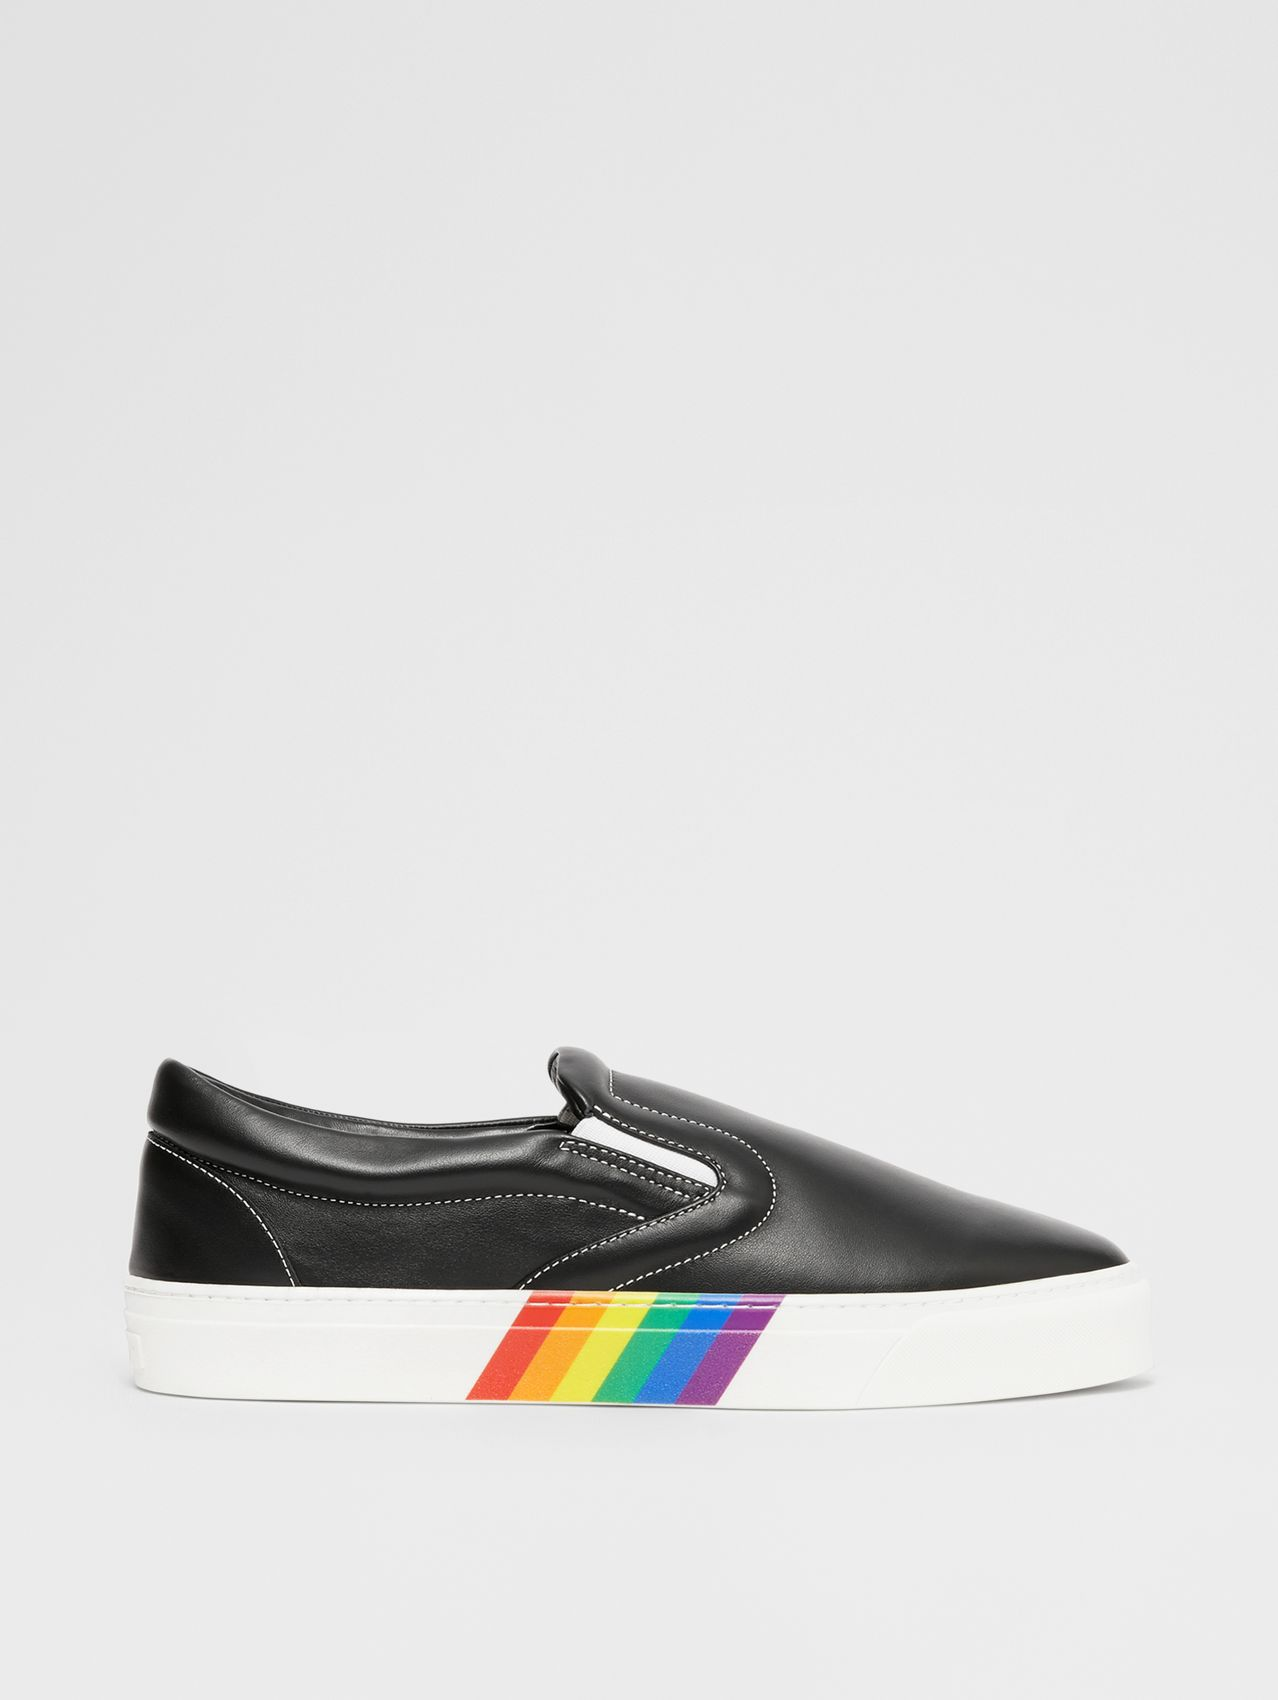 Rainbow Print Leather Slip-on Sneakers in Black